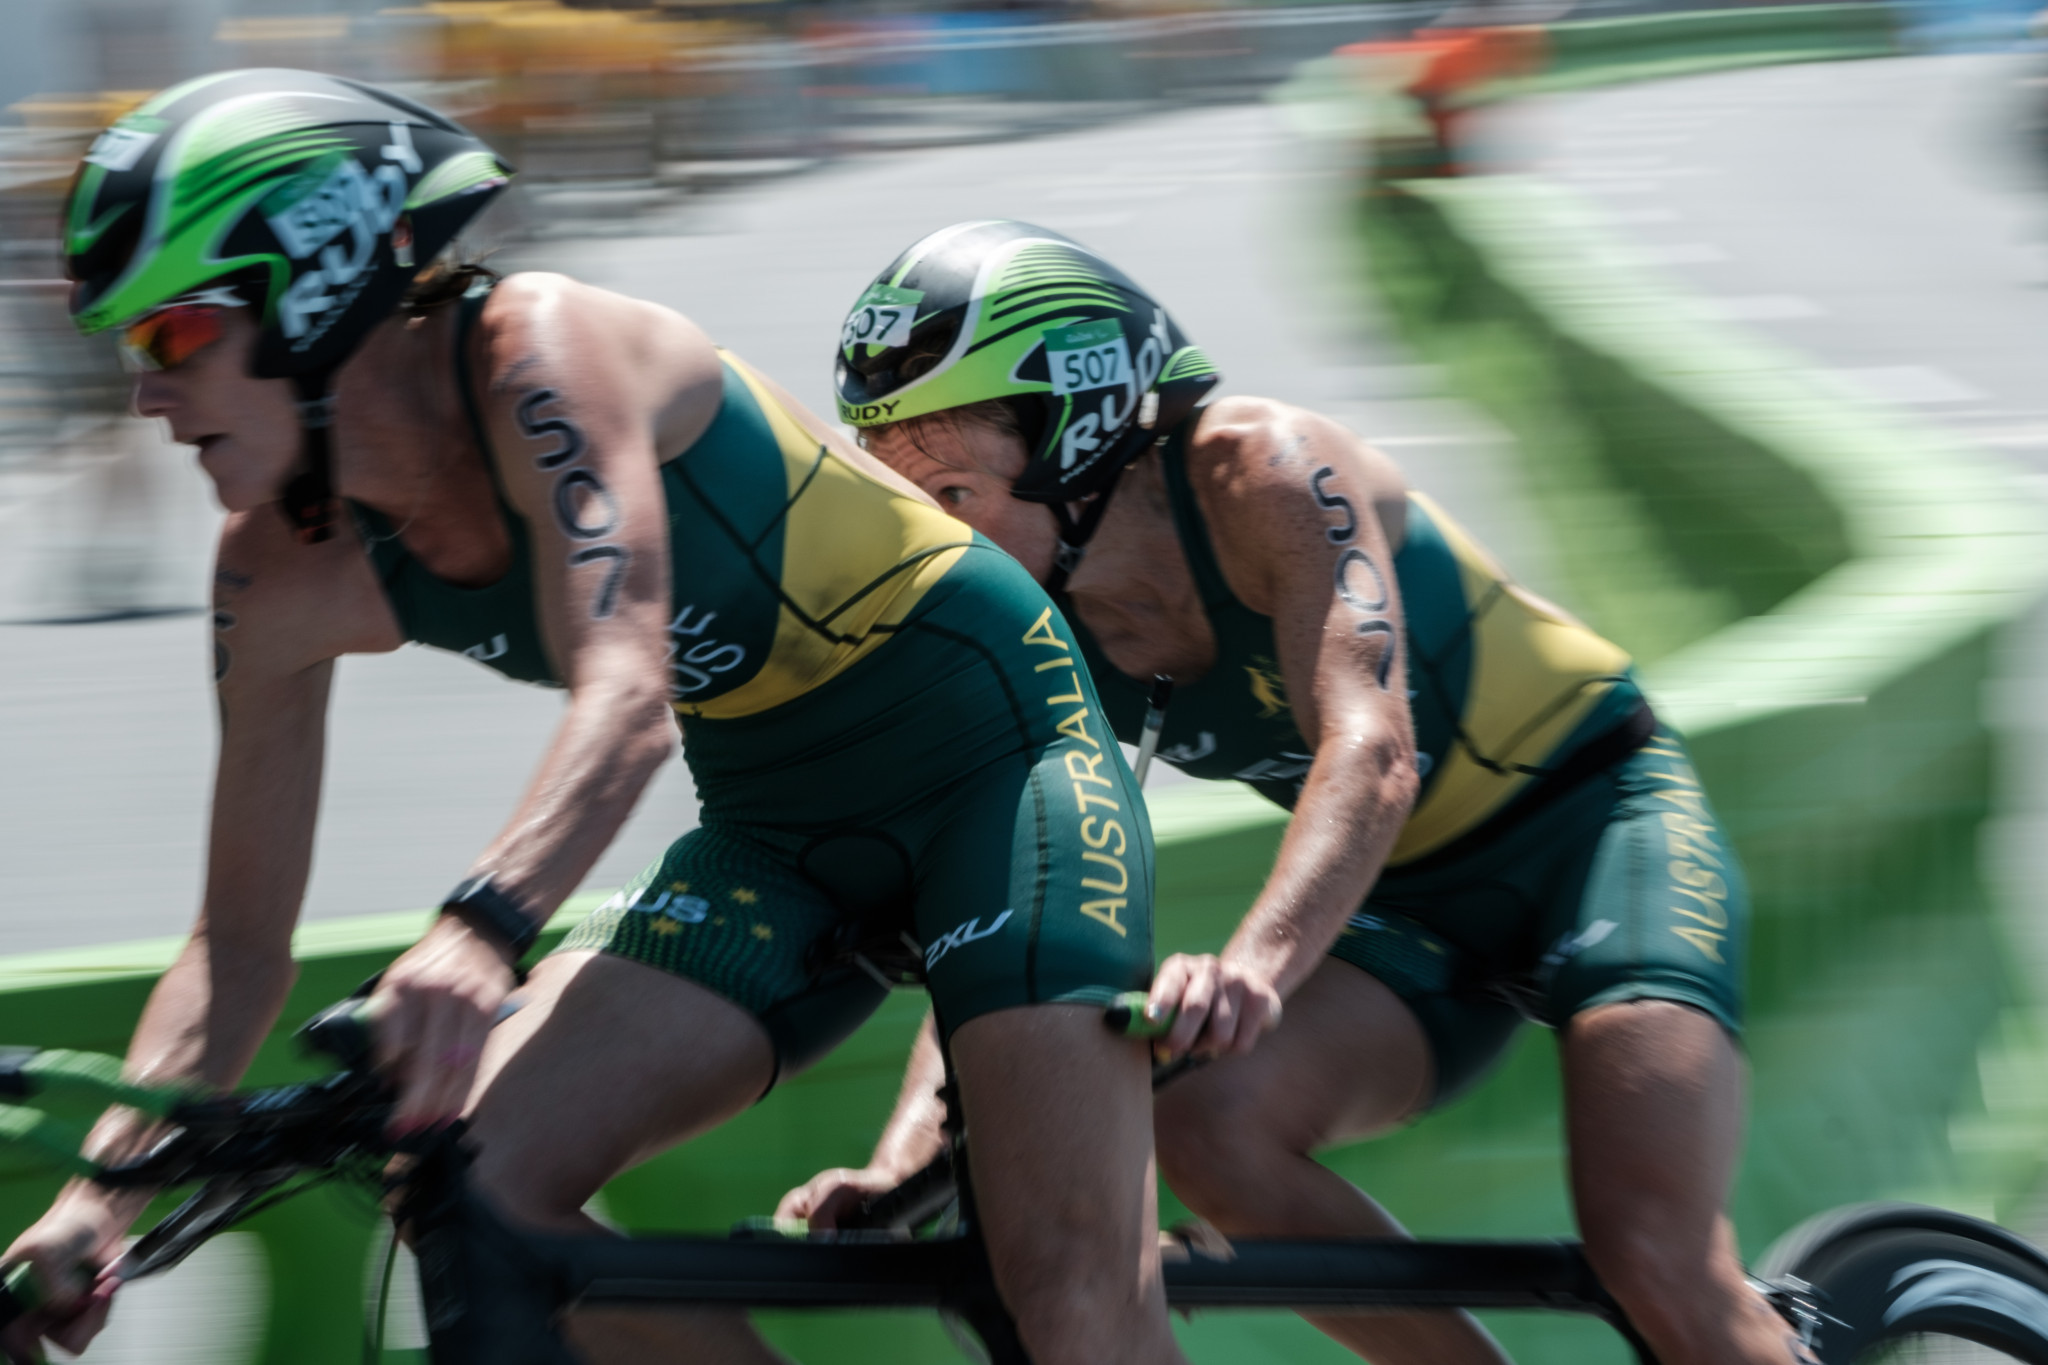 Devonport to host Paratriathlon World Cup season opener